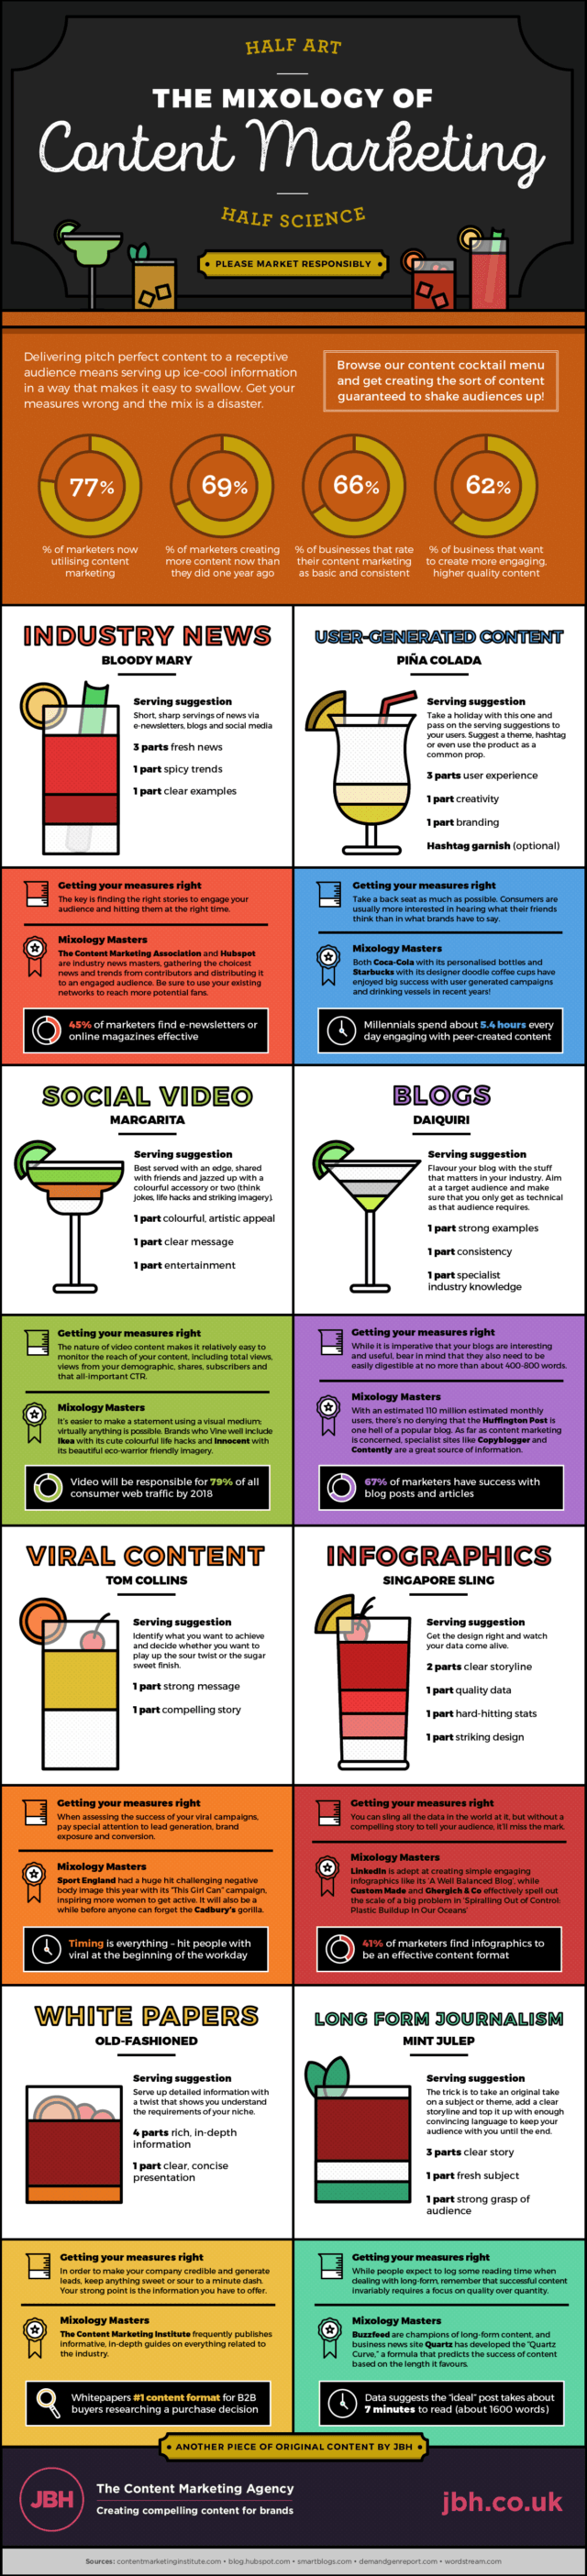 Content Marketing Mixology Infographic